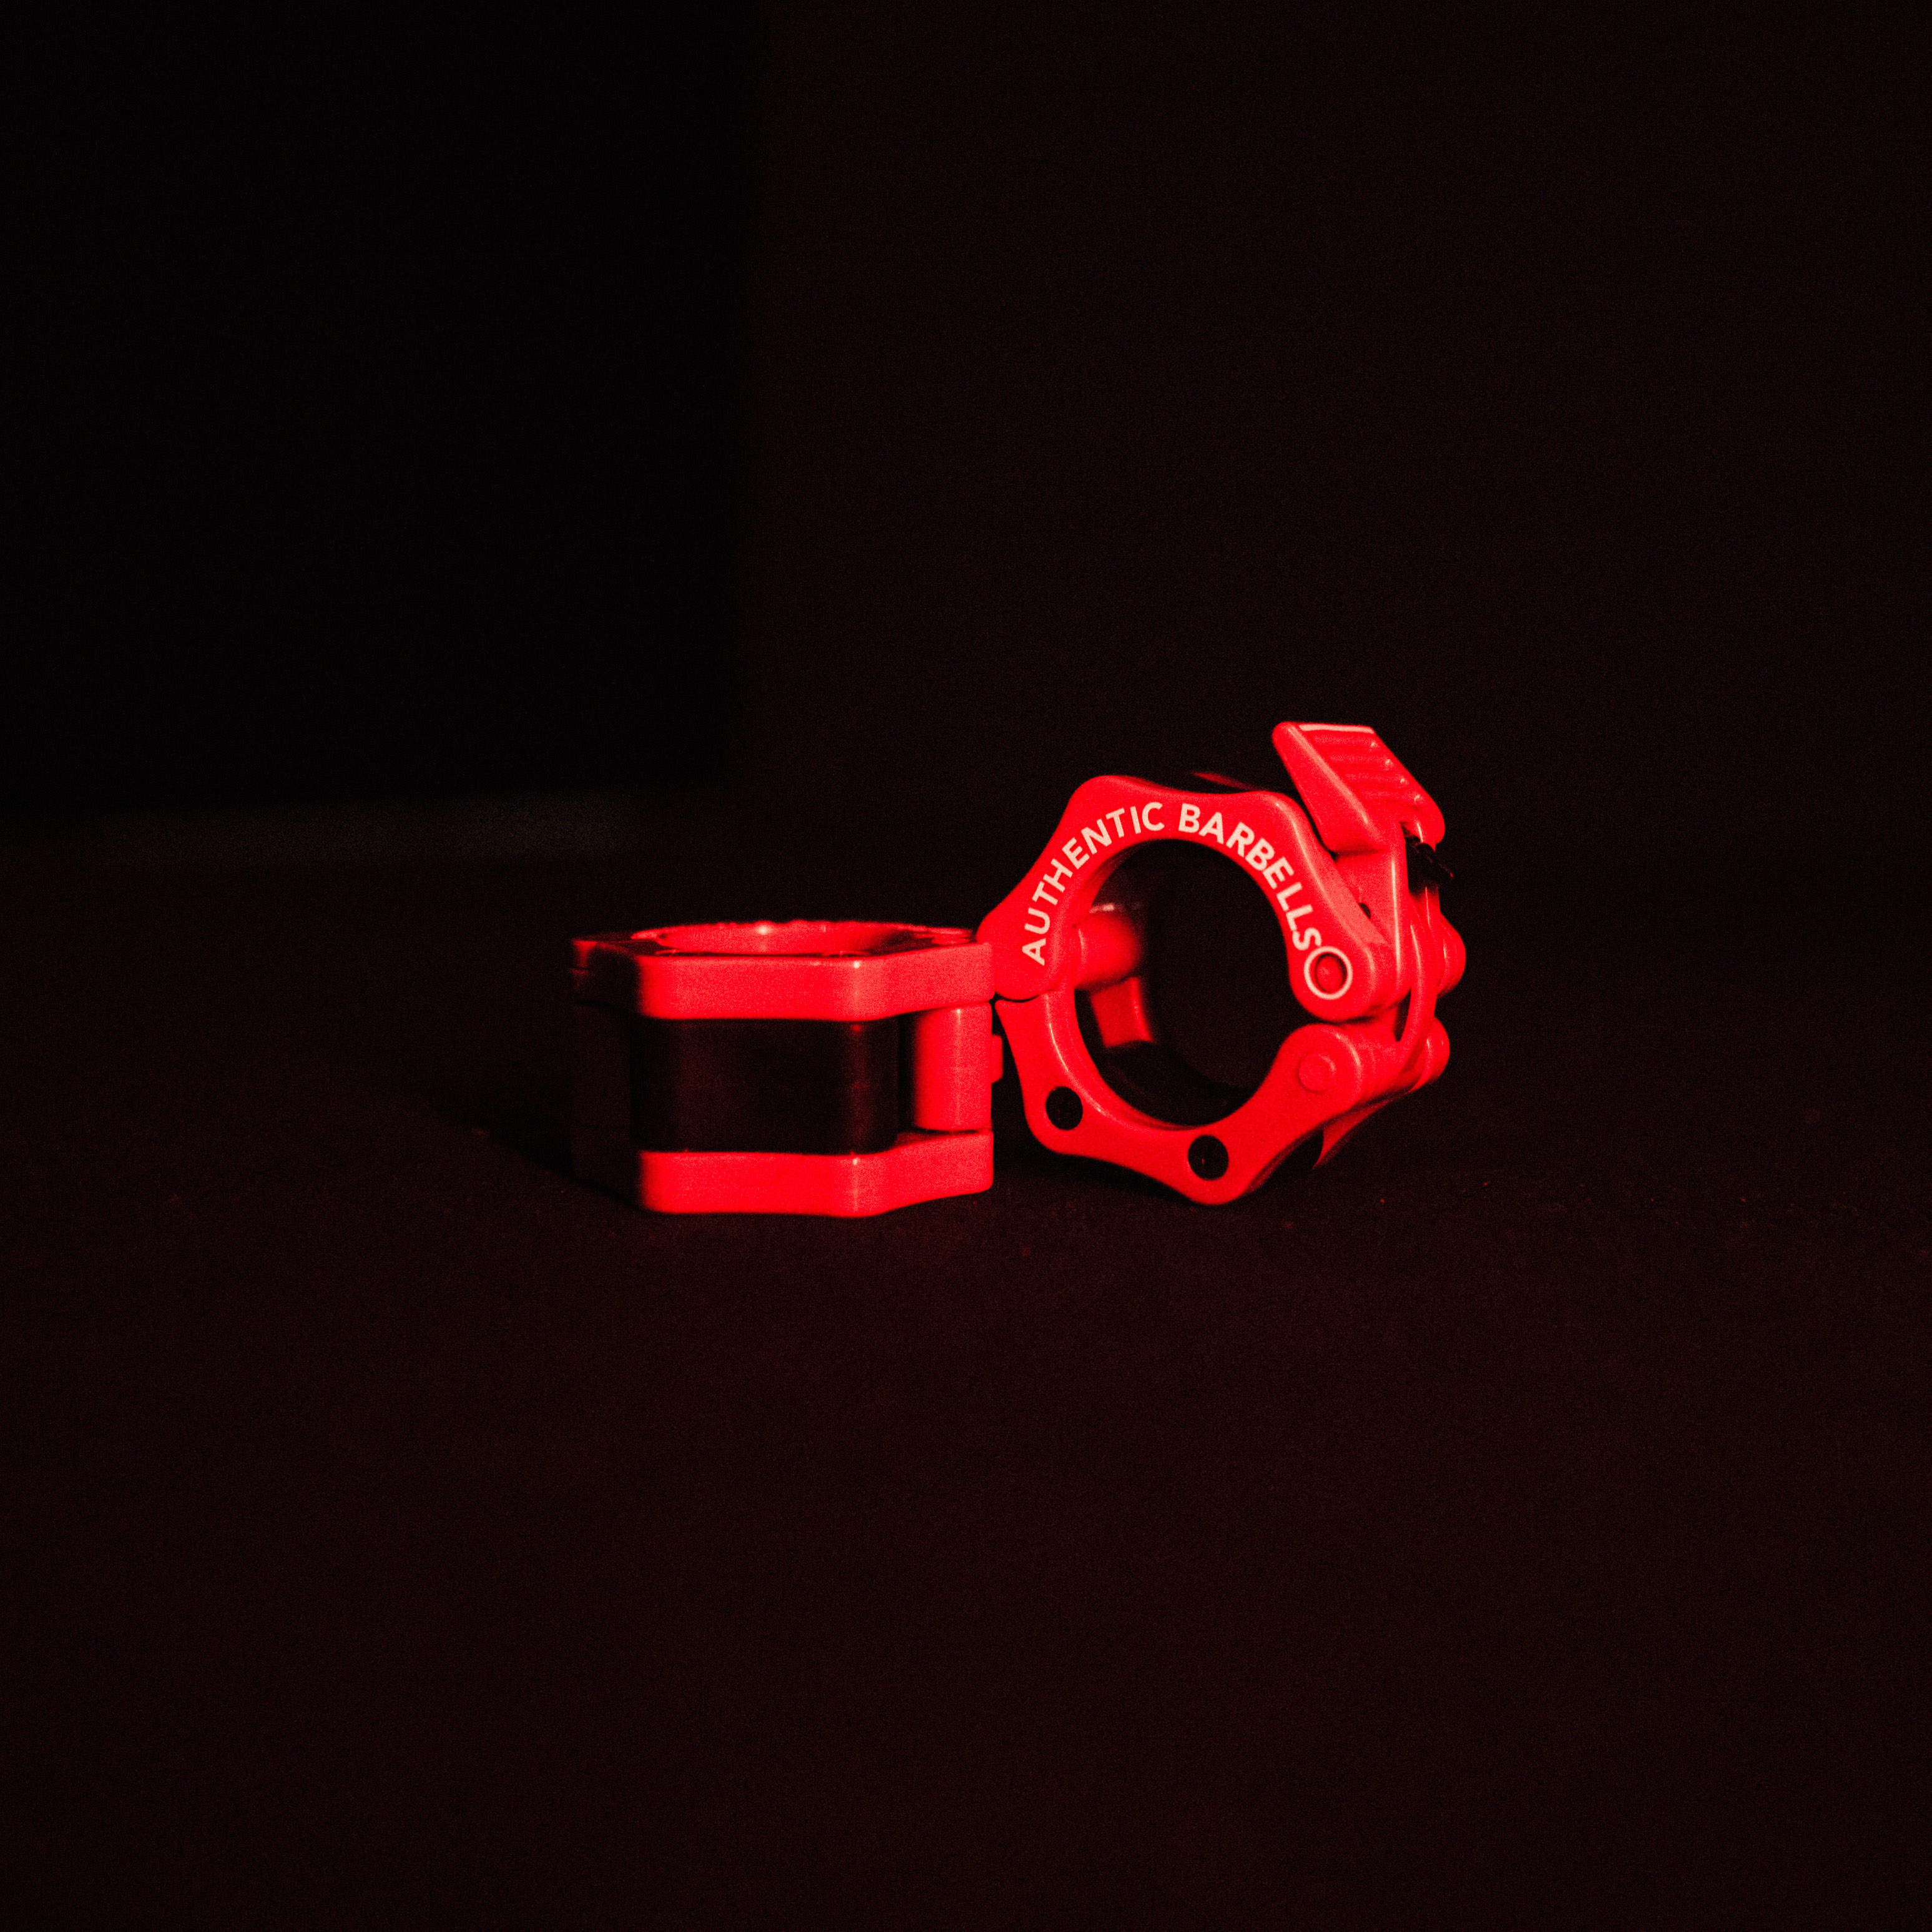 Energetic Red Barbell Clamp